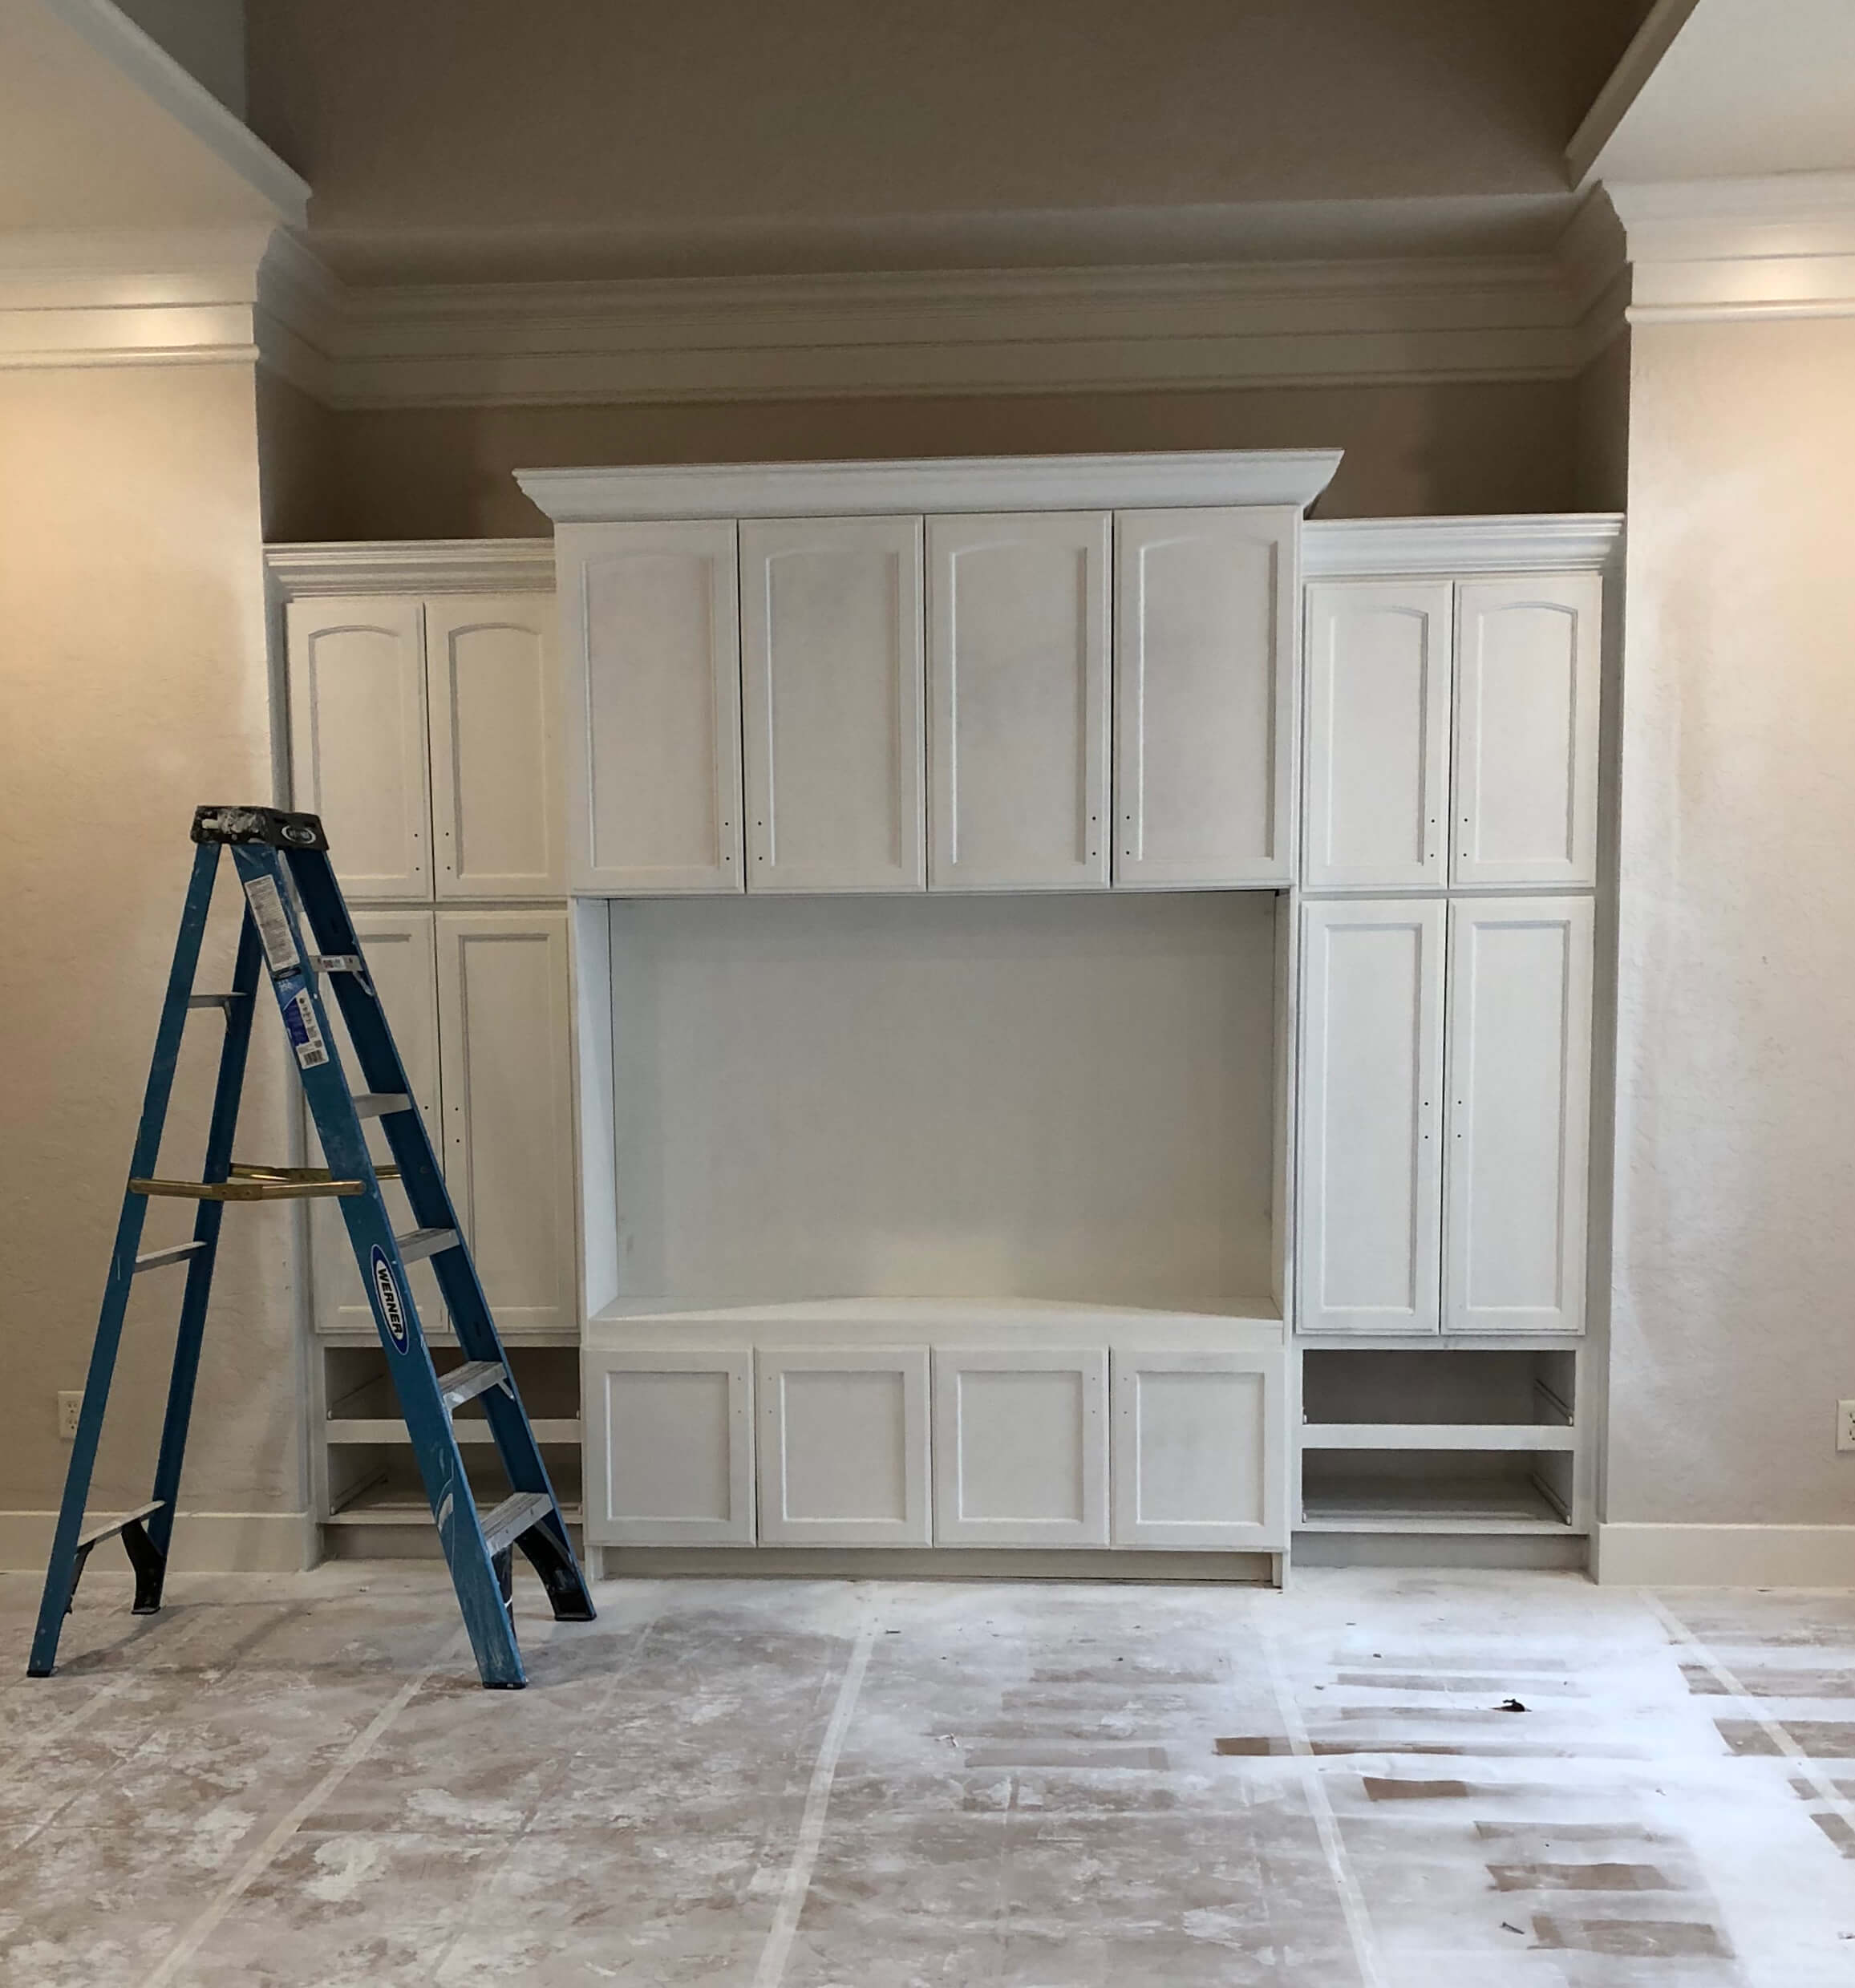 IN PROGRESS - Primed and ready for finishing, the lower cabinet and false back were added in to the existing deep tv cabinetry on this job. #tvcabinet